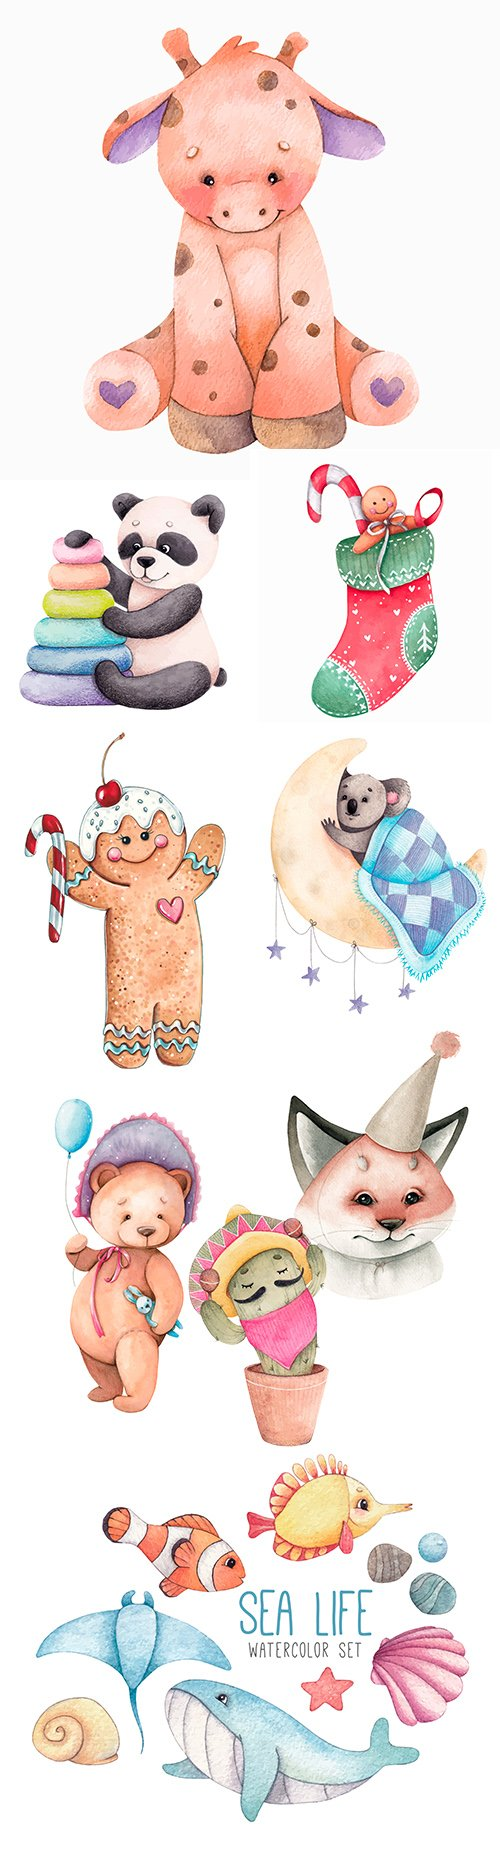 Watercolor illustrations cute cartoon animals in different caps